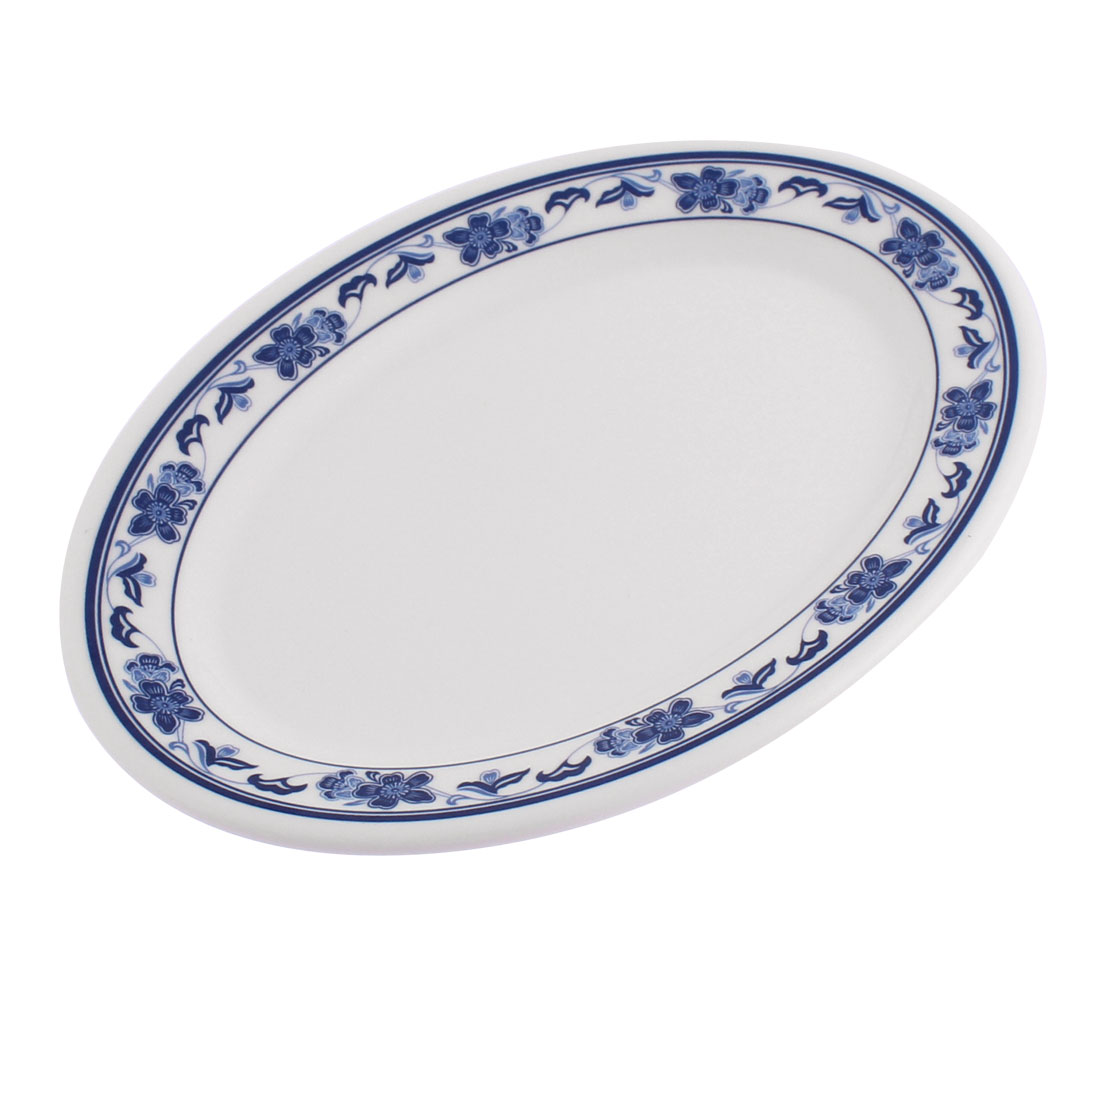 Plastic Oval Shaped Flower Printed Food Snack Dessert Dish Plate White Blue